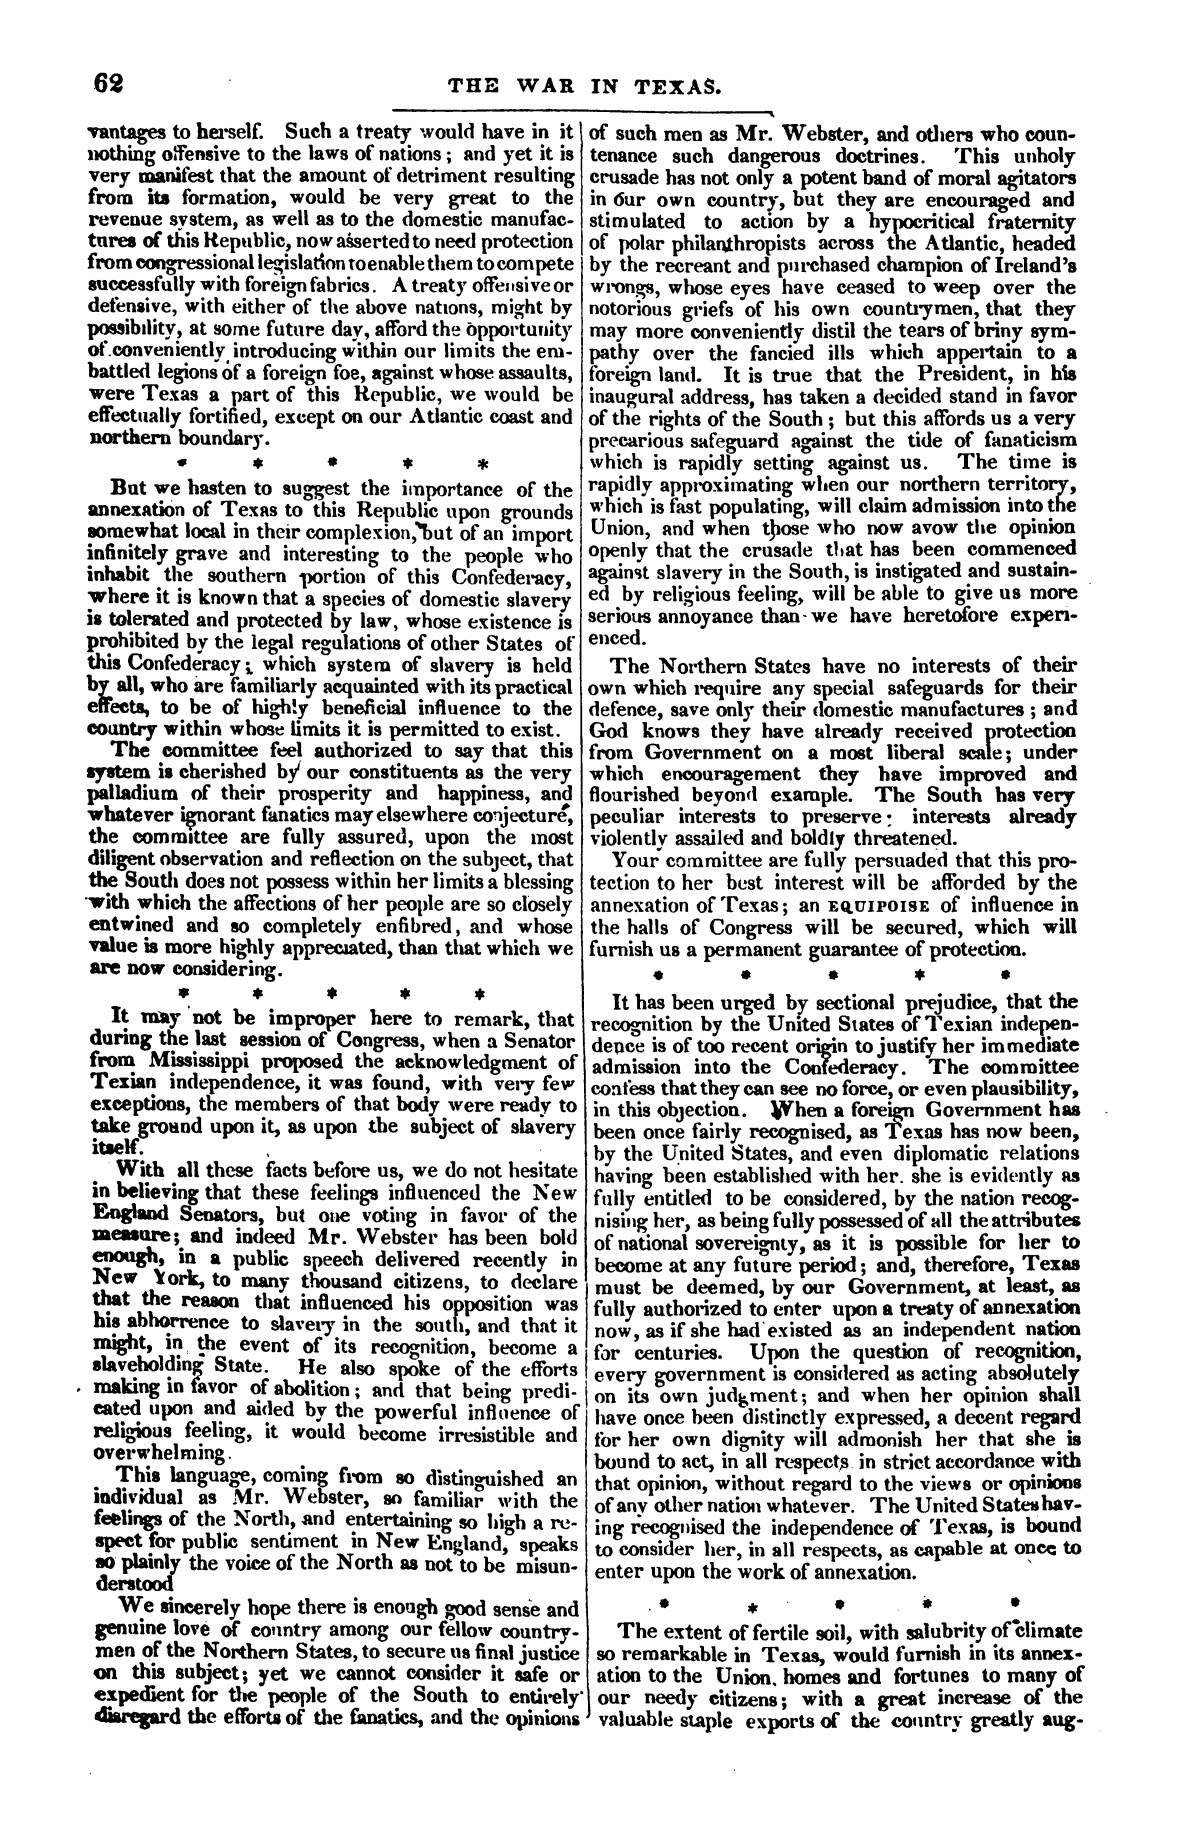 The war in Texas; a review of facts and circumstances, showing that this contest is a crusade against Mexico, set on foot by slaveholders, land speculators, & c. in order to re-establish, extend, and perpetuate the system of slavery and the slave trade.                                                                                                      [Sequence #]: 62 of 64